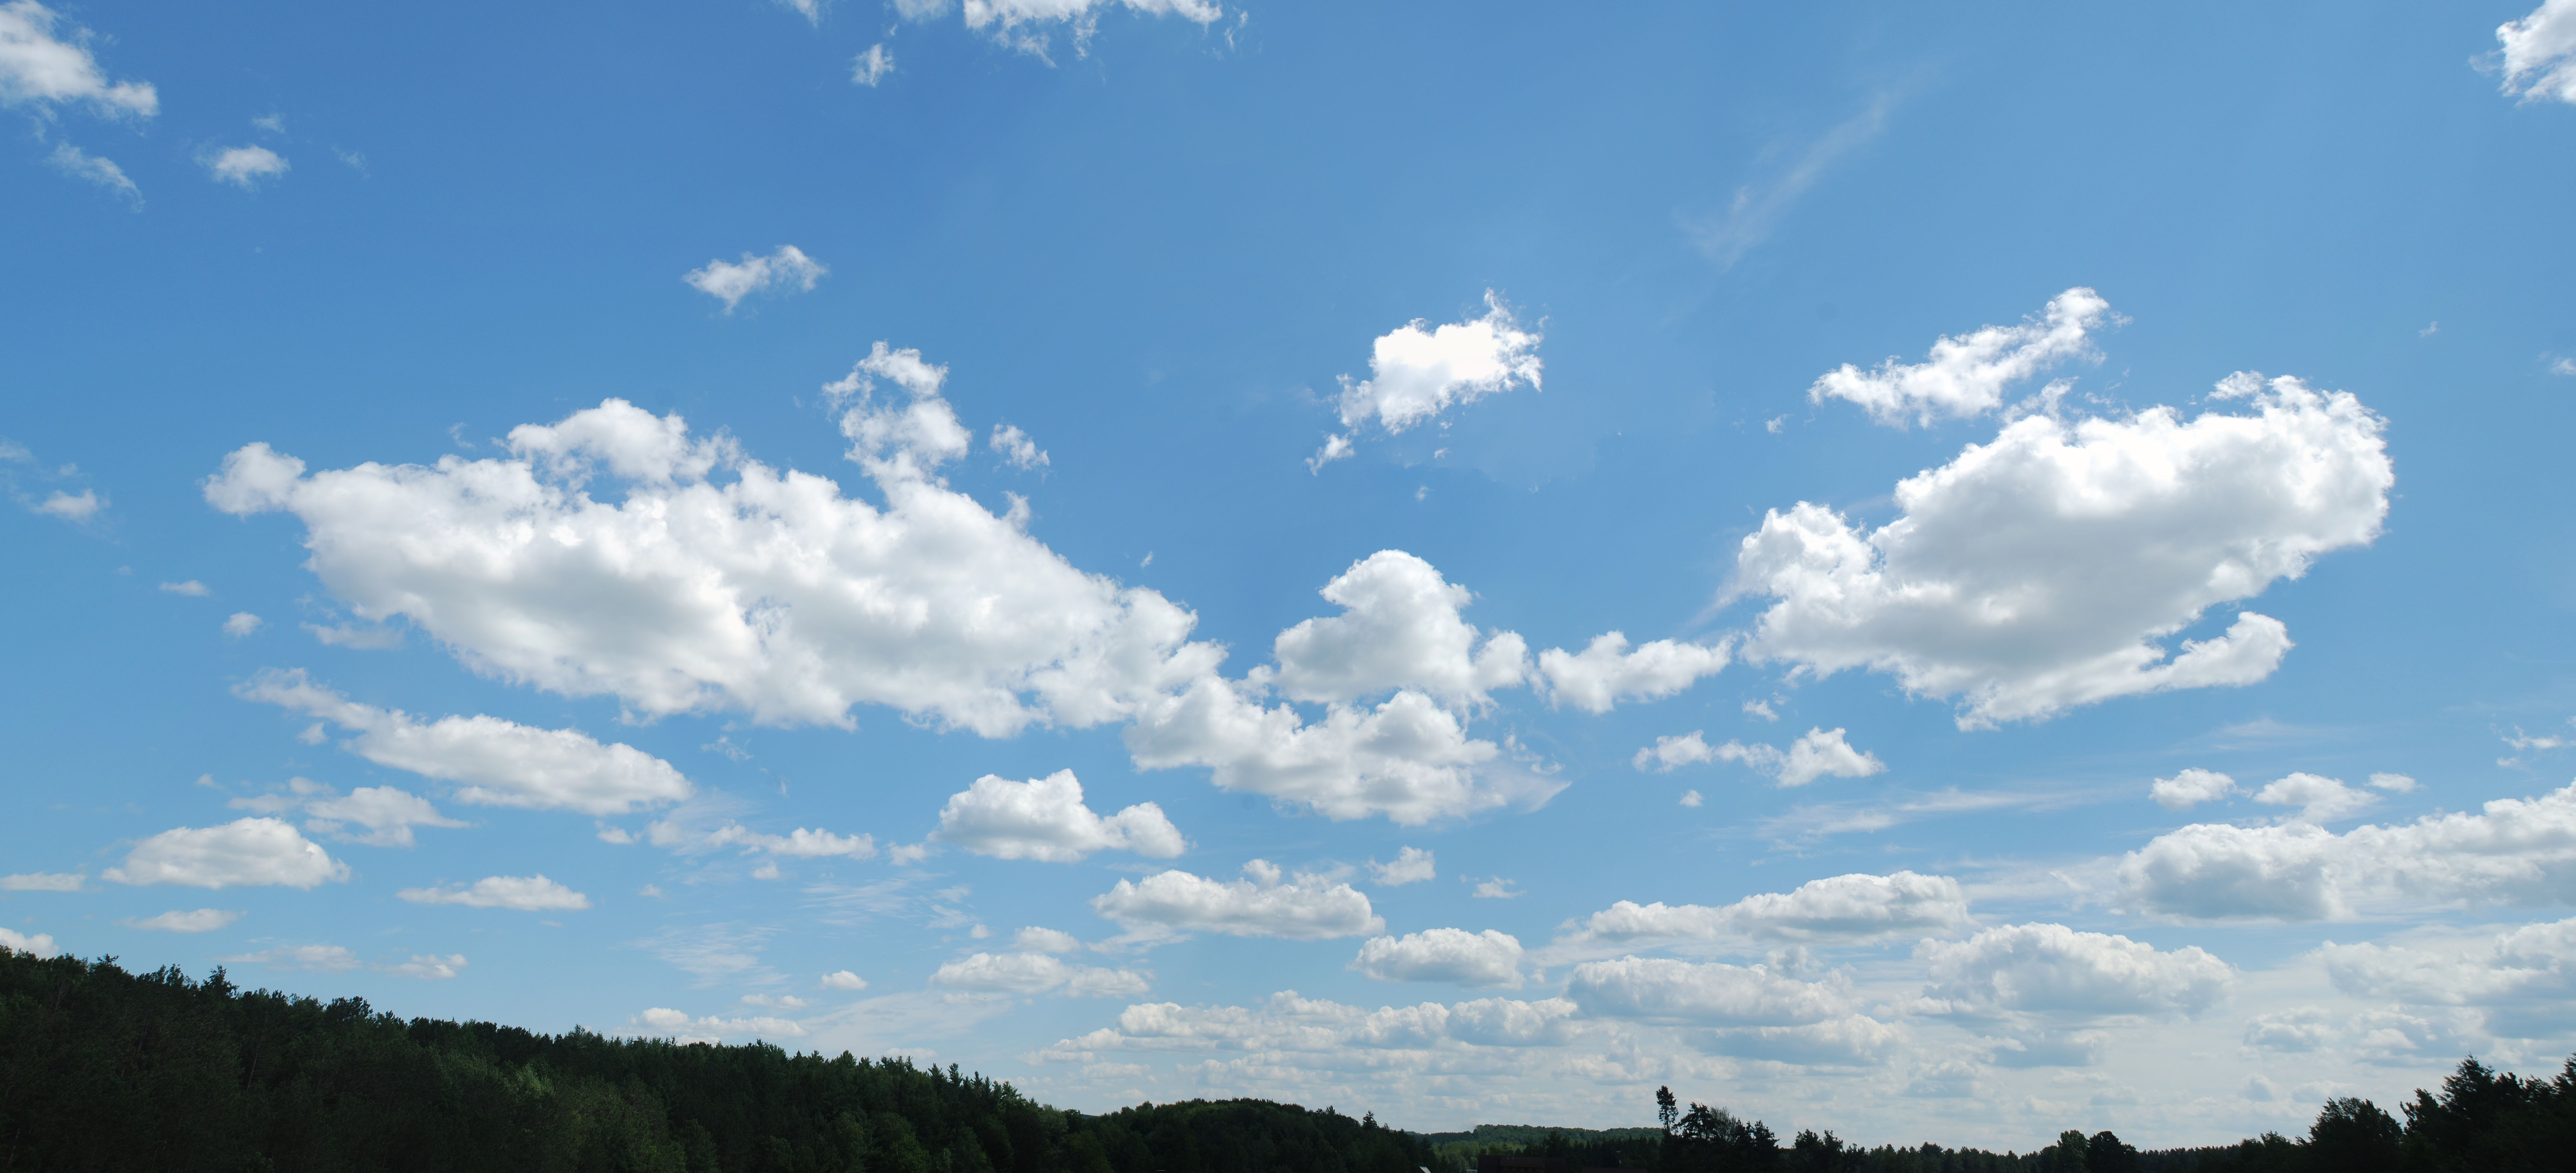 Blue Sky With Clouds Wallpaper 56 Images: A Useful Sky Background To Drop Into Architecture